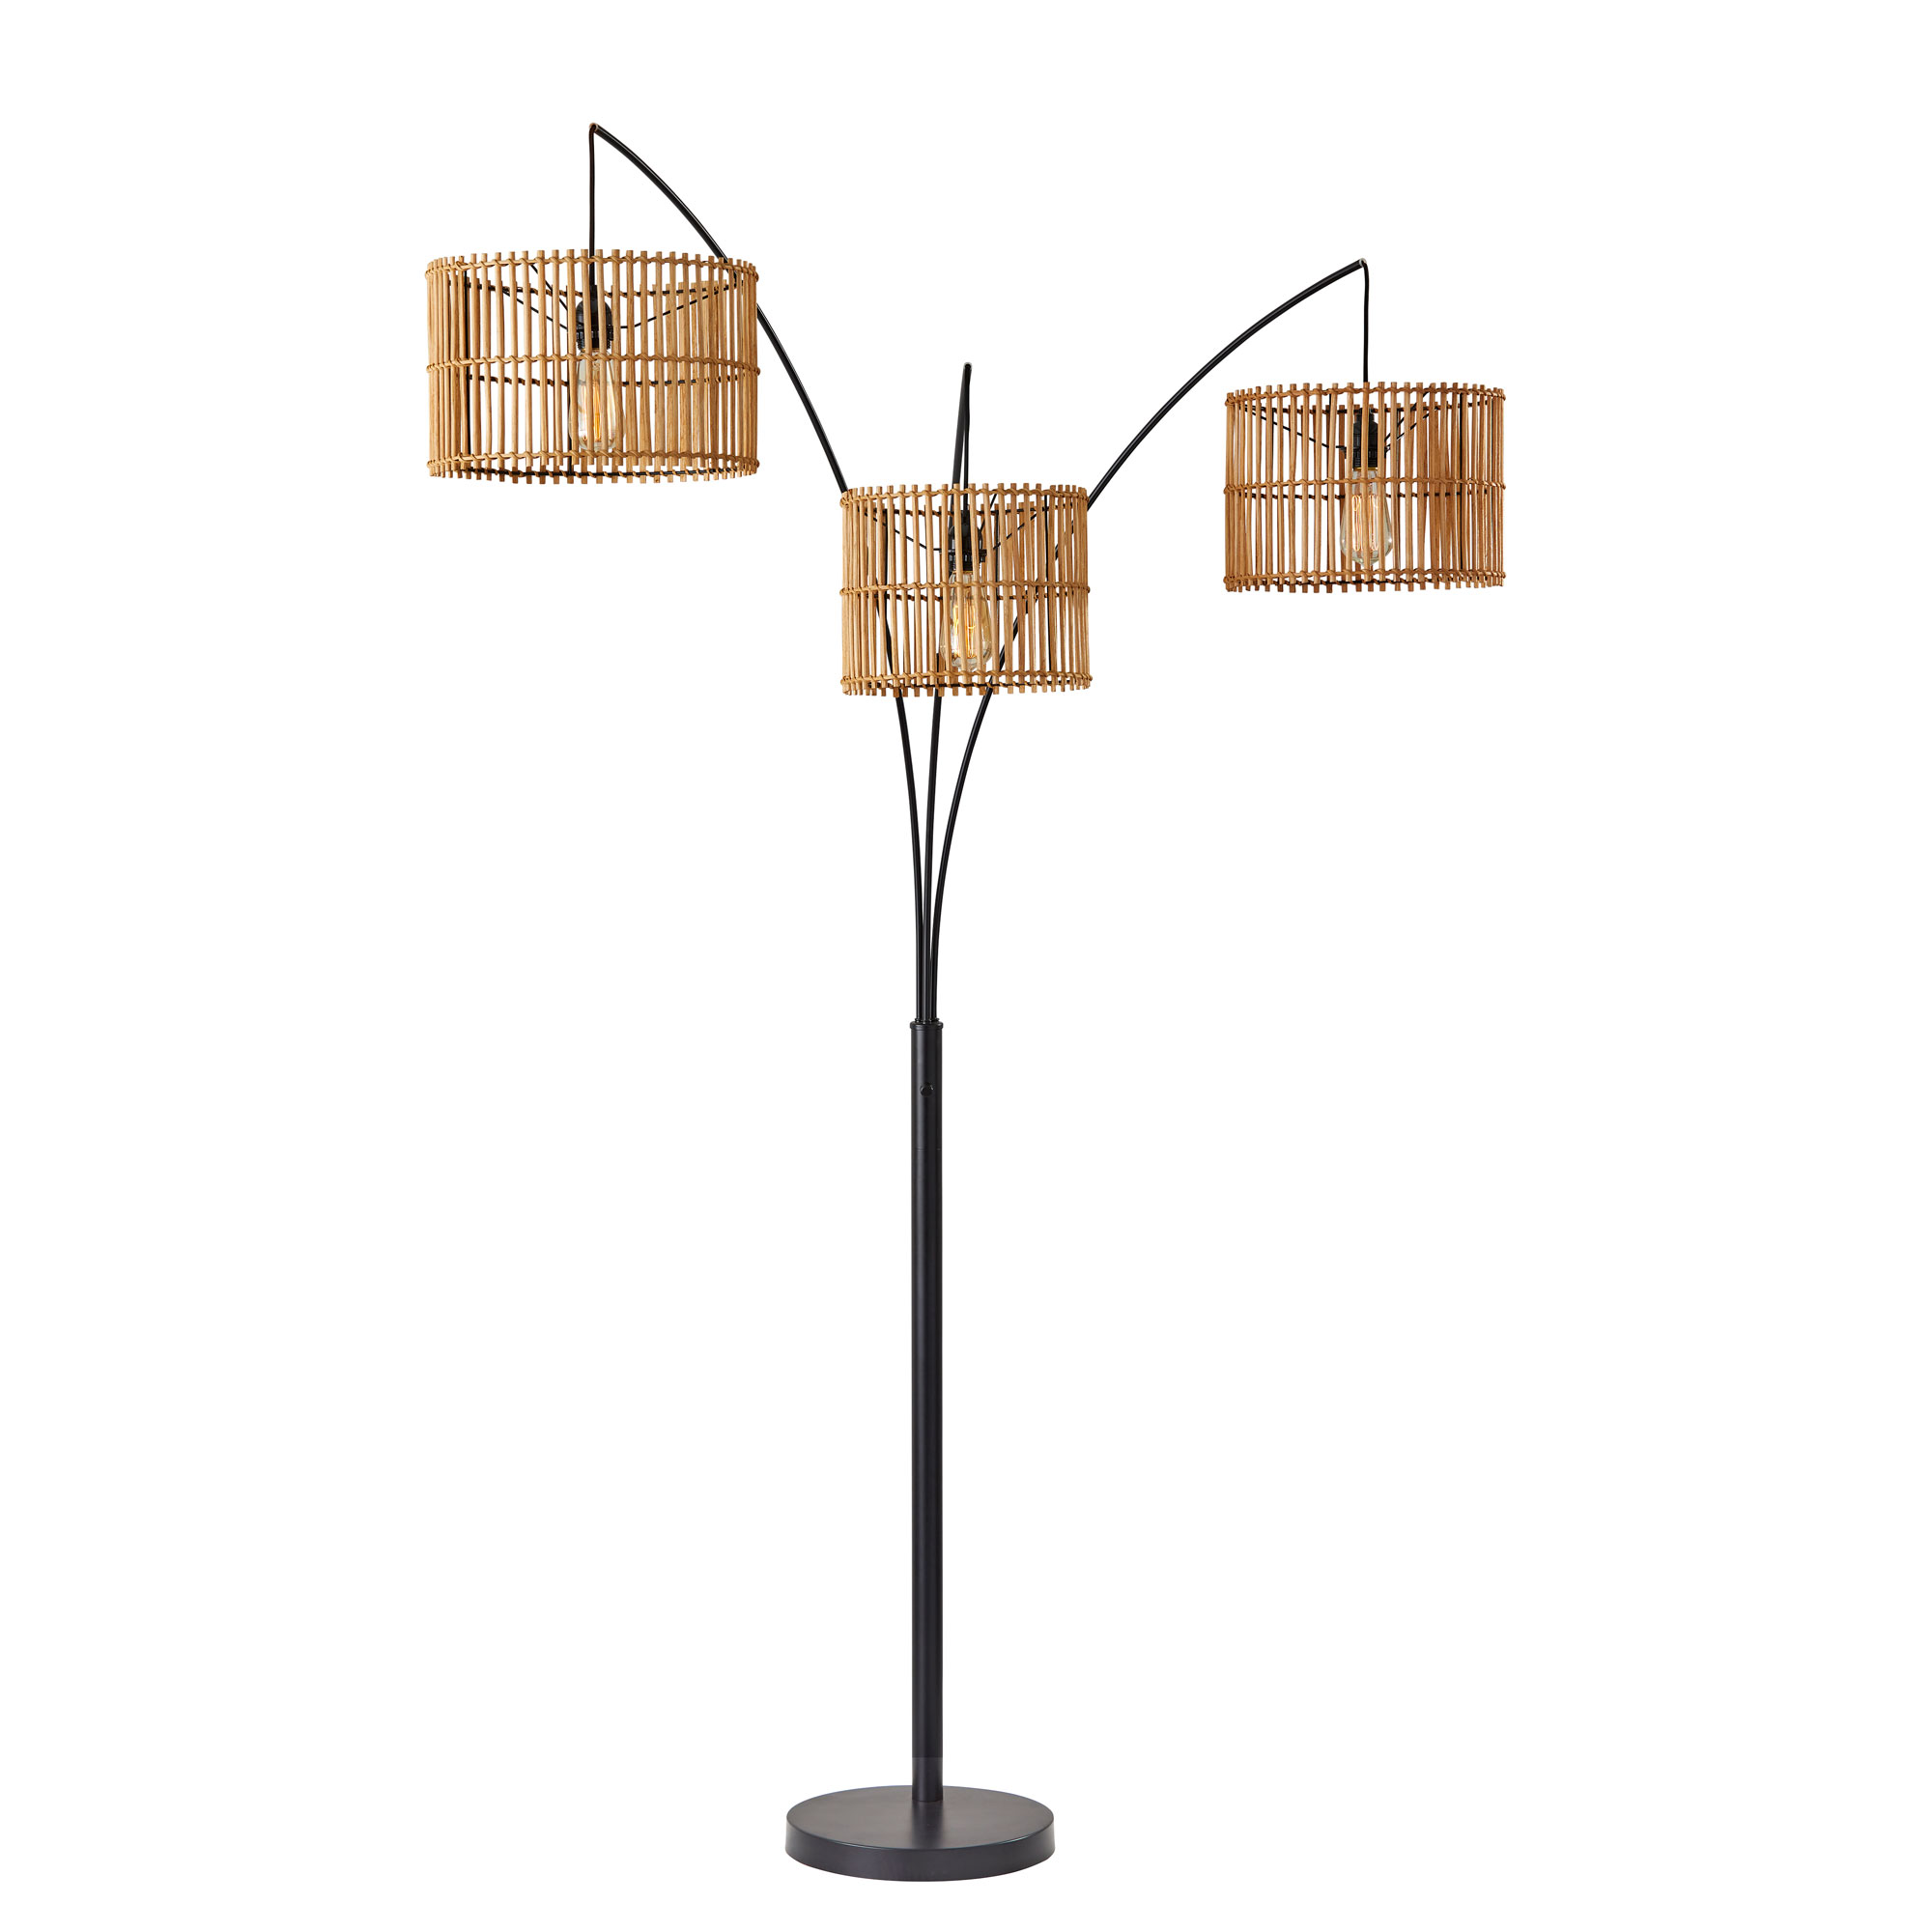 Cabana Arc Floor Lamp By Adesso Corp 4199 12